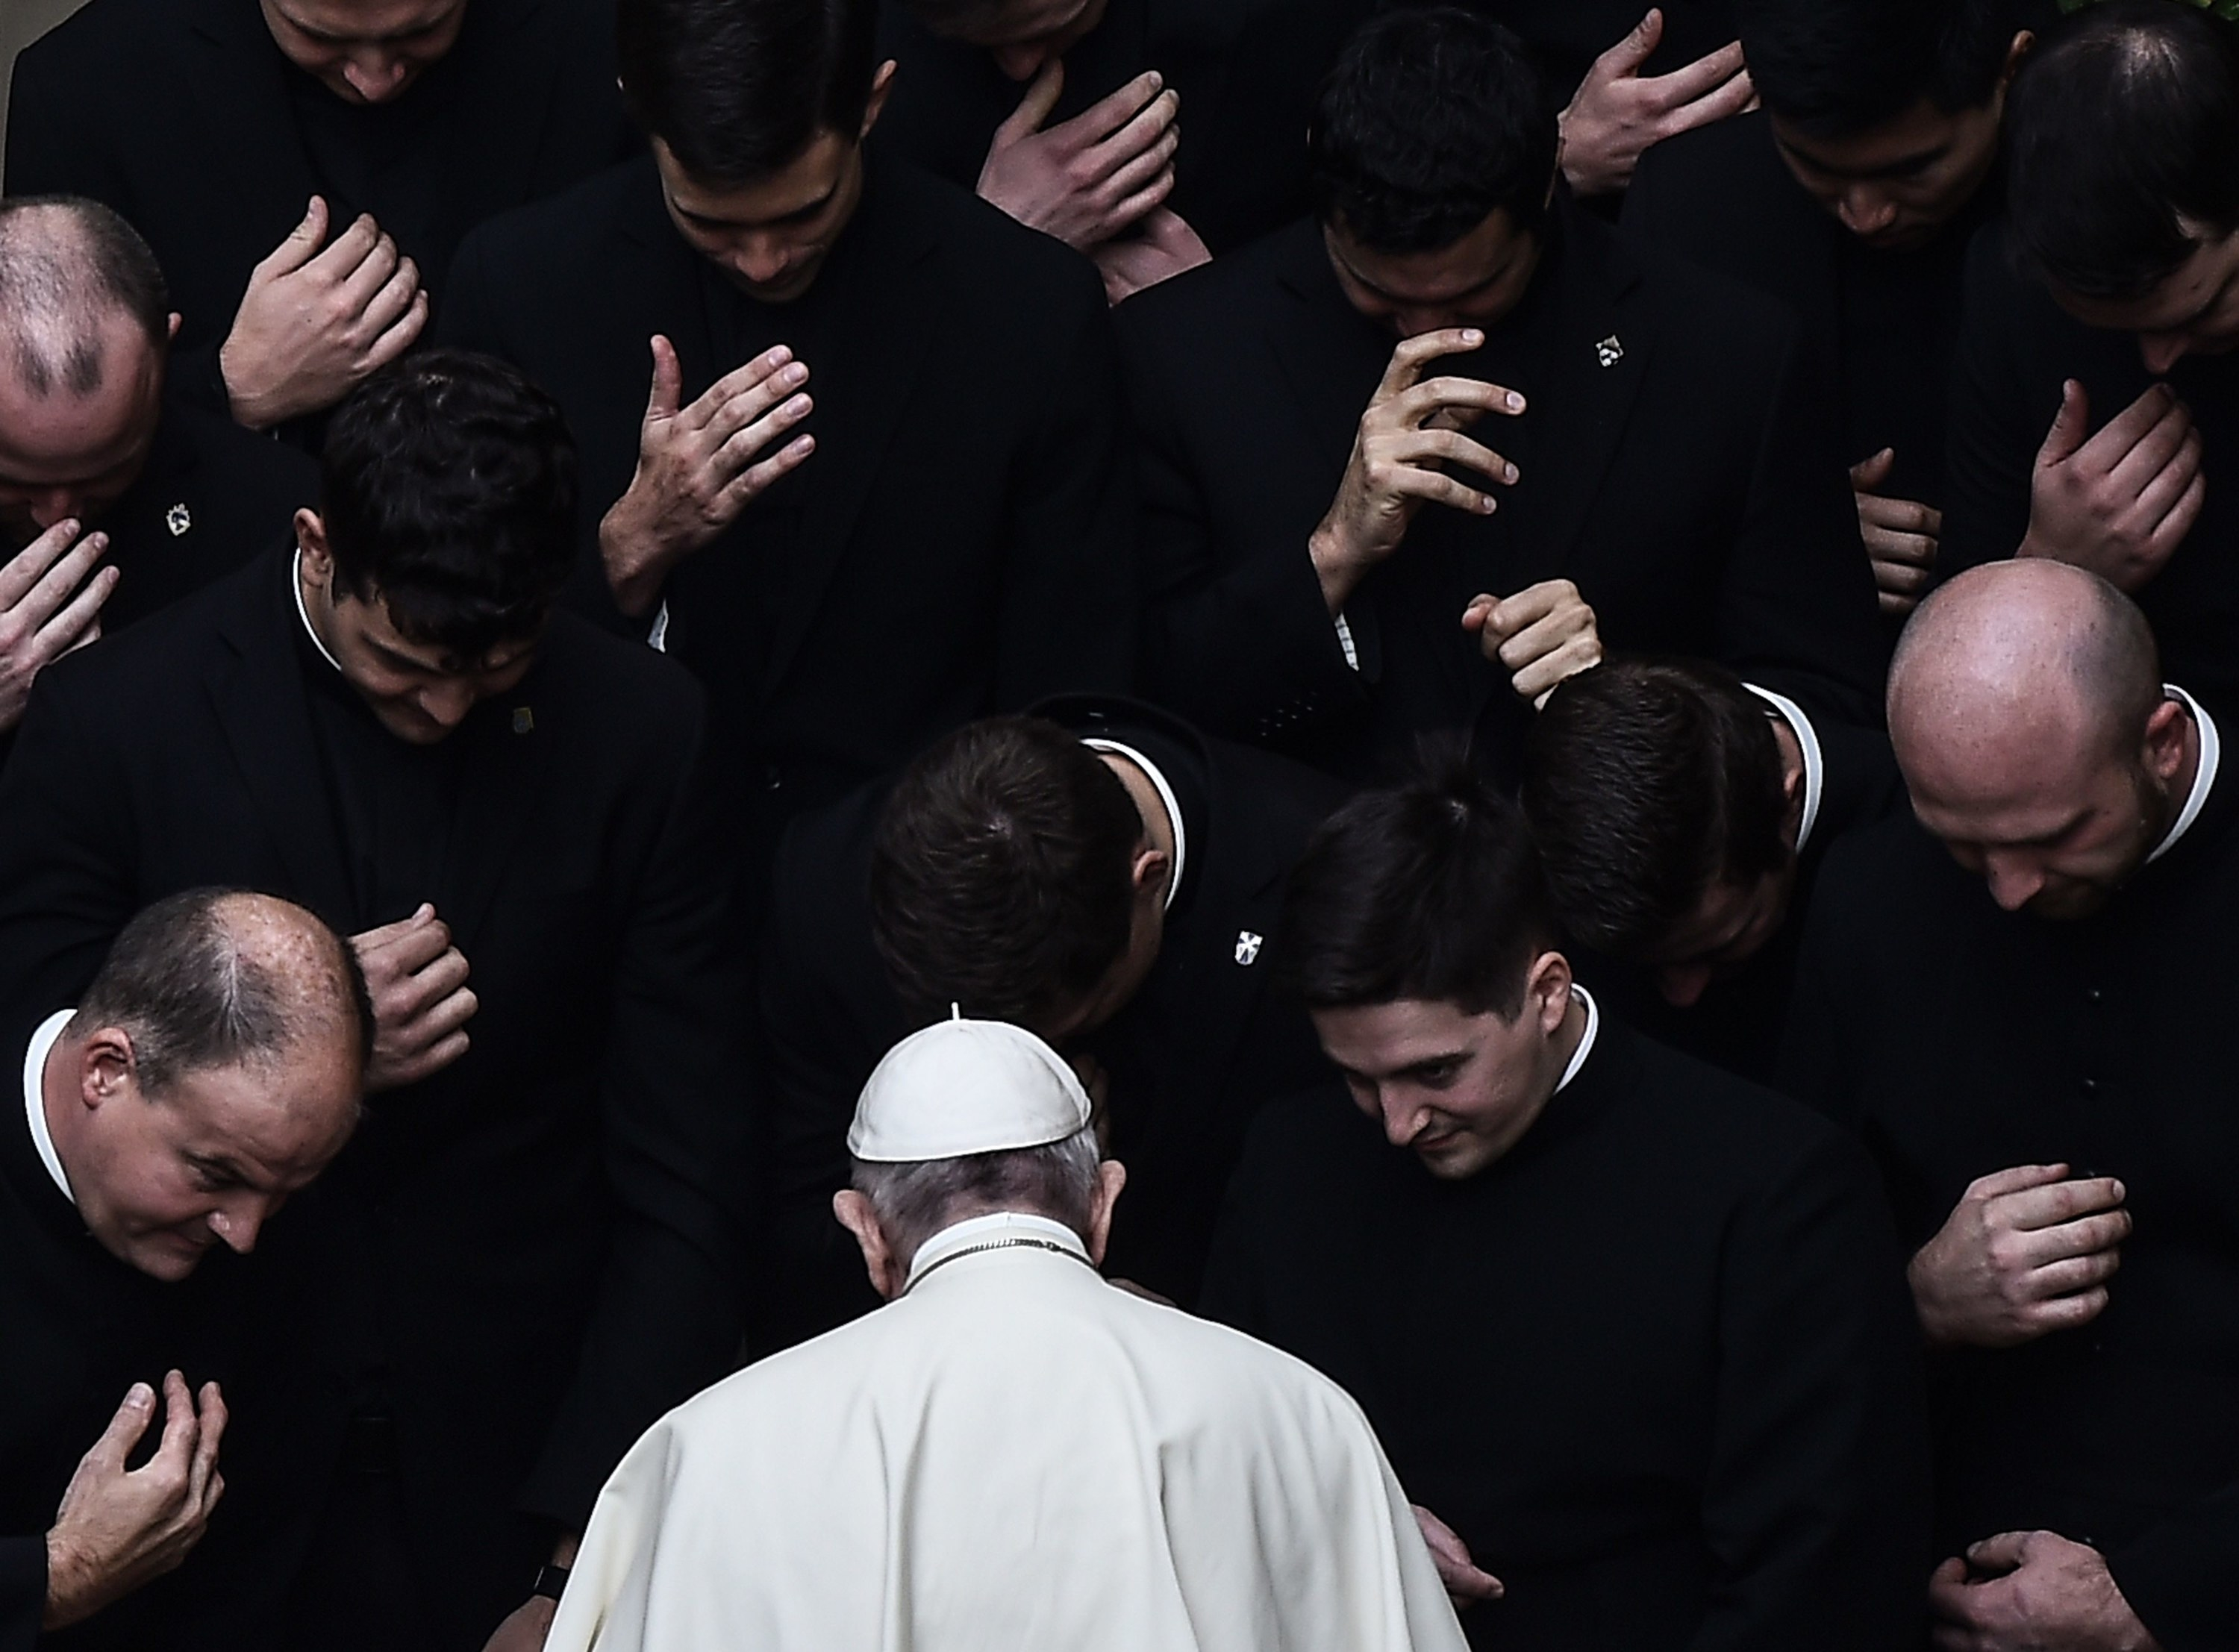 The pope, dressed in white, is surrounded by priests, dressed in black